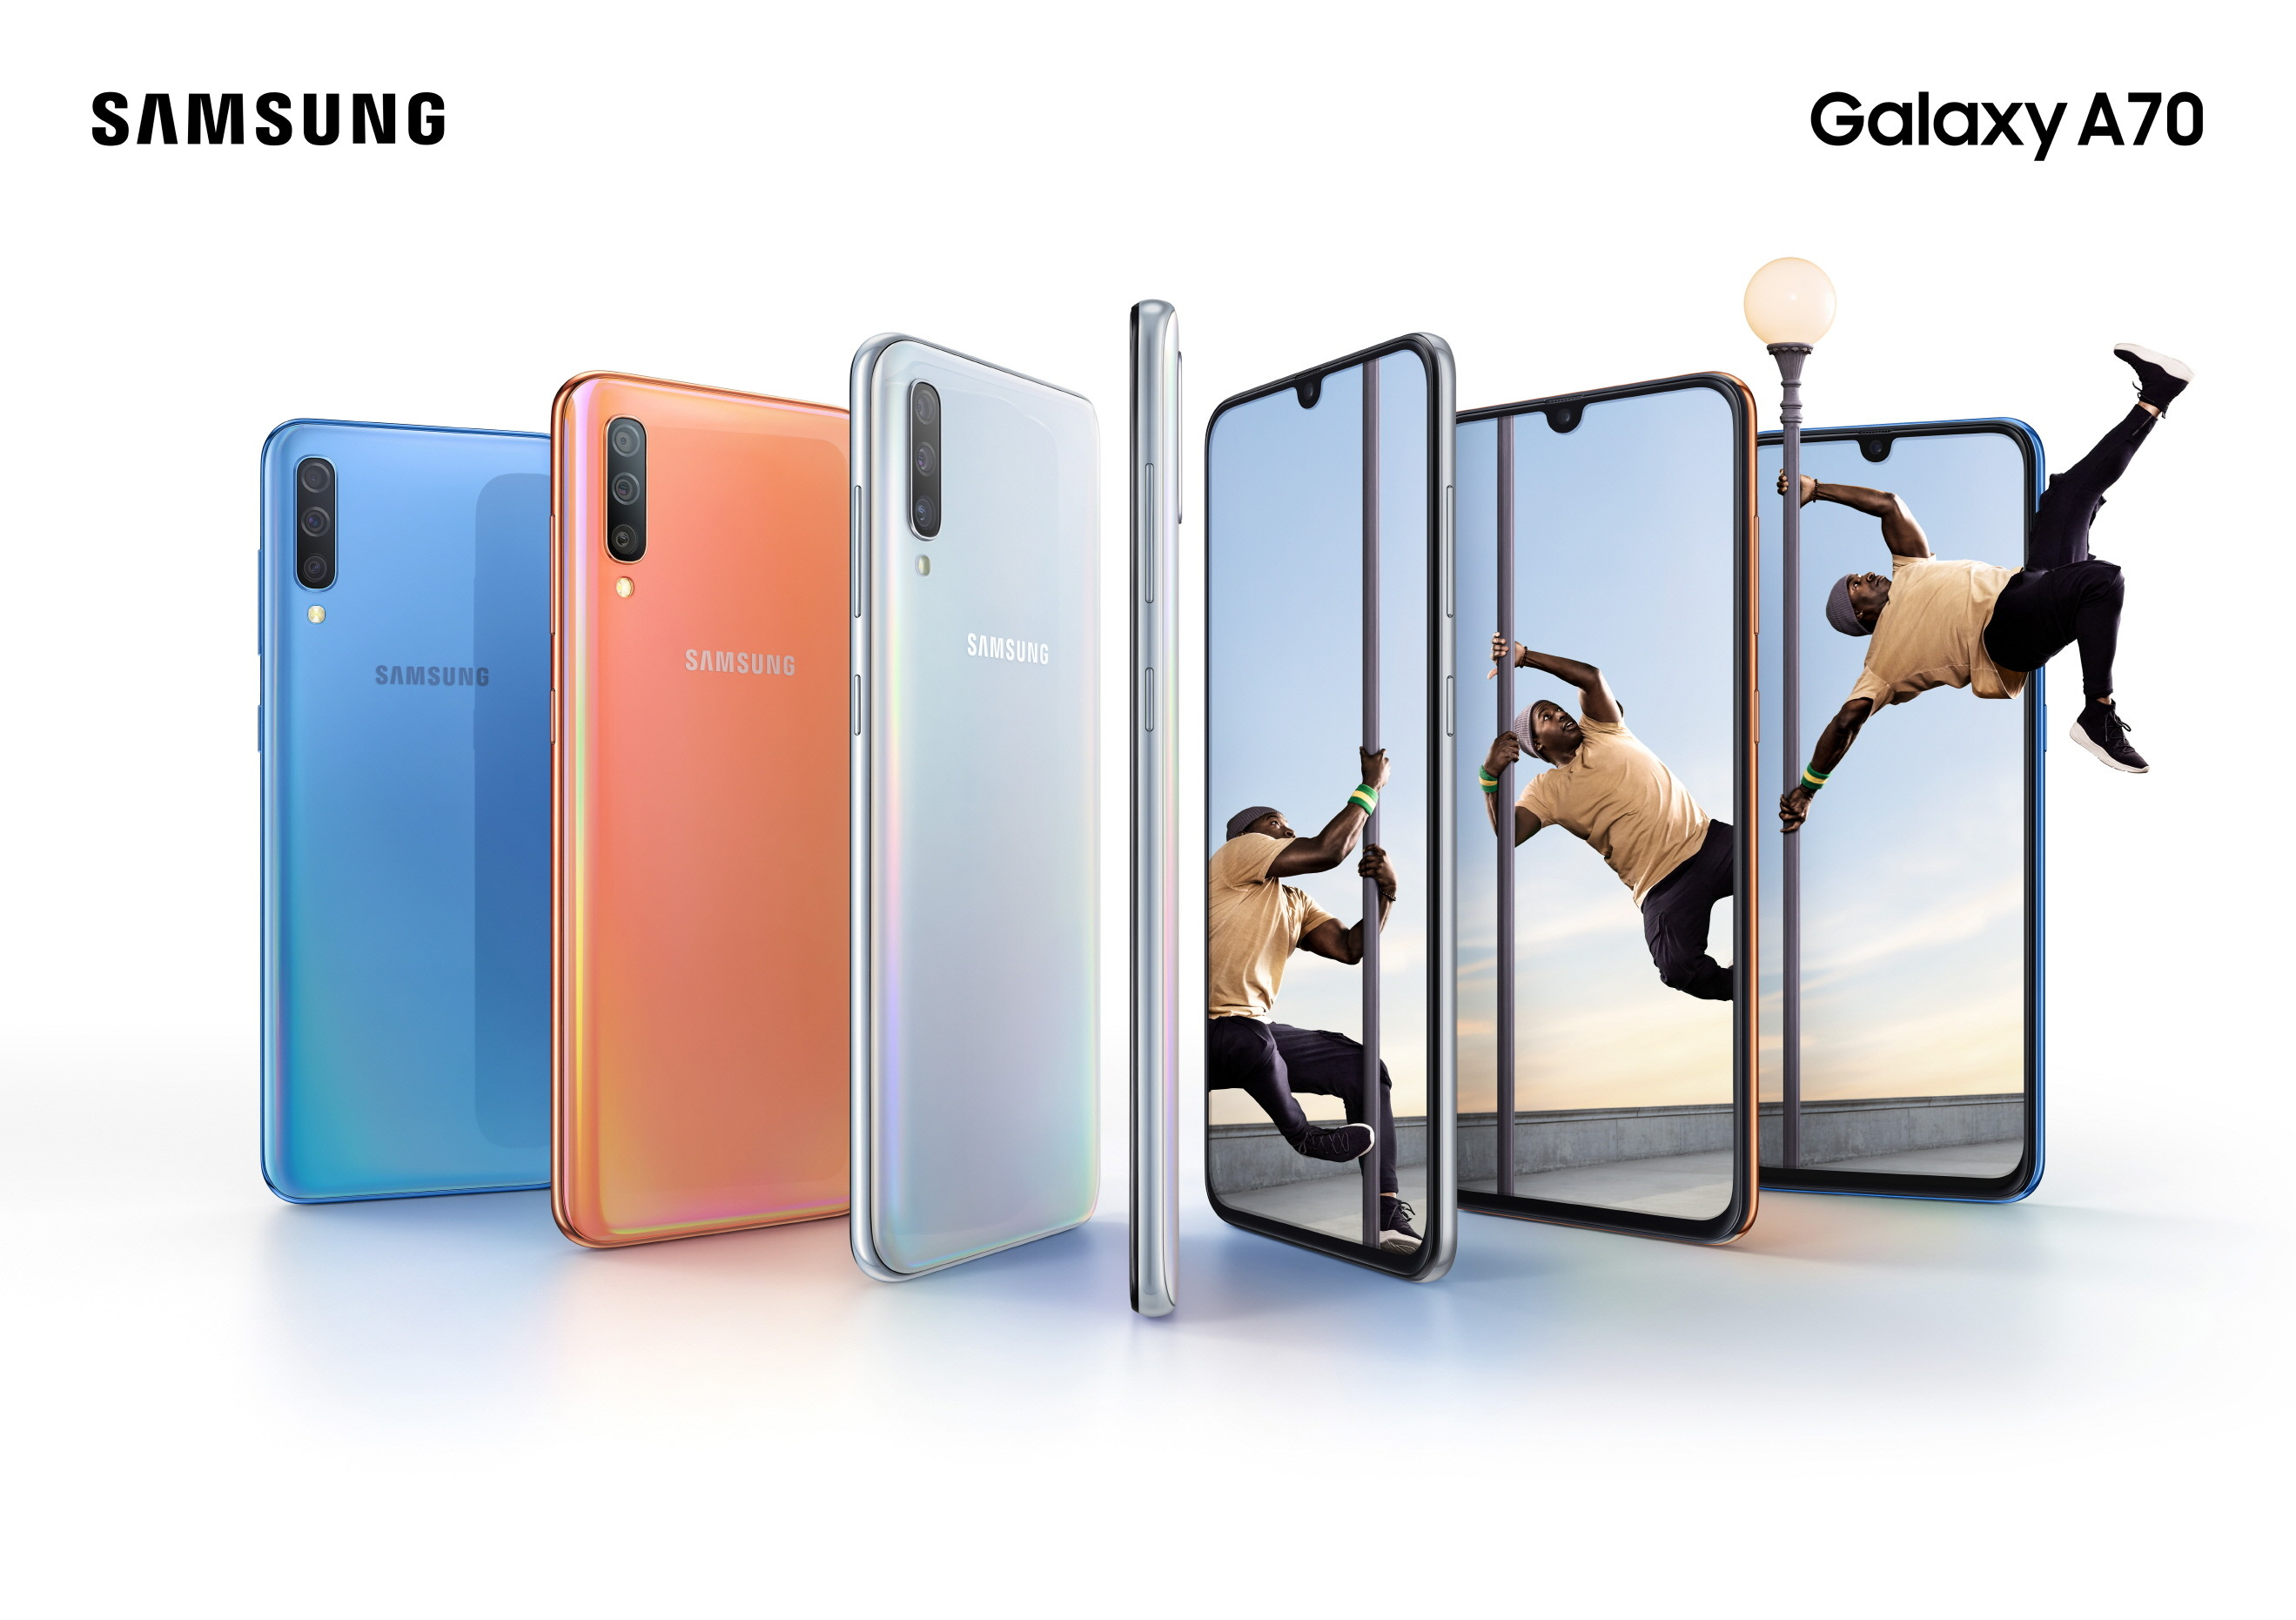 b617890924d Samsung Announces Galaxy A70 With Three Primary Cameras And Many More